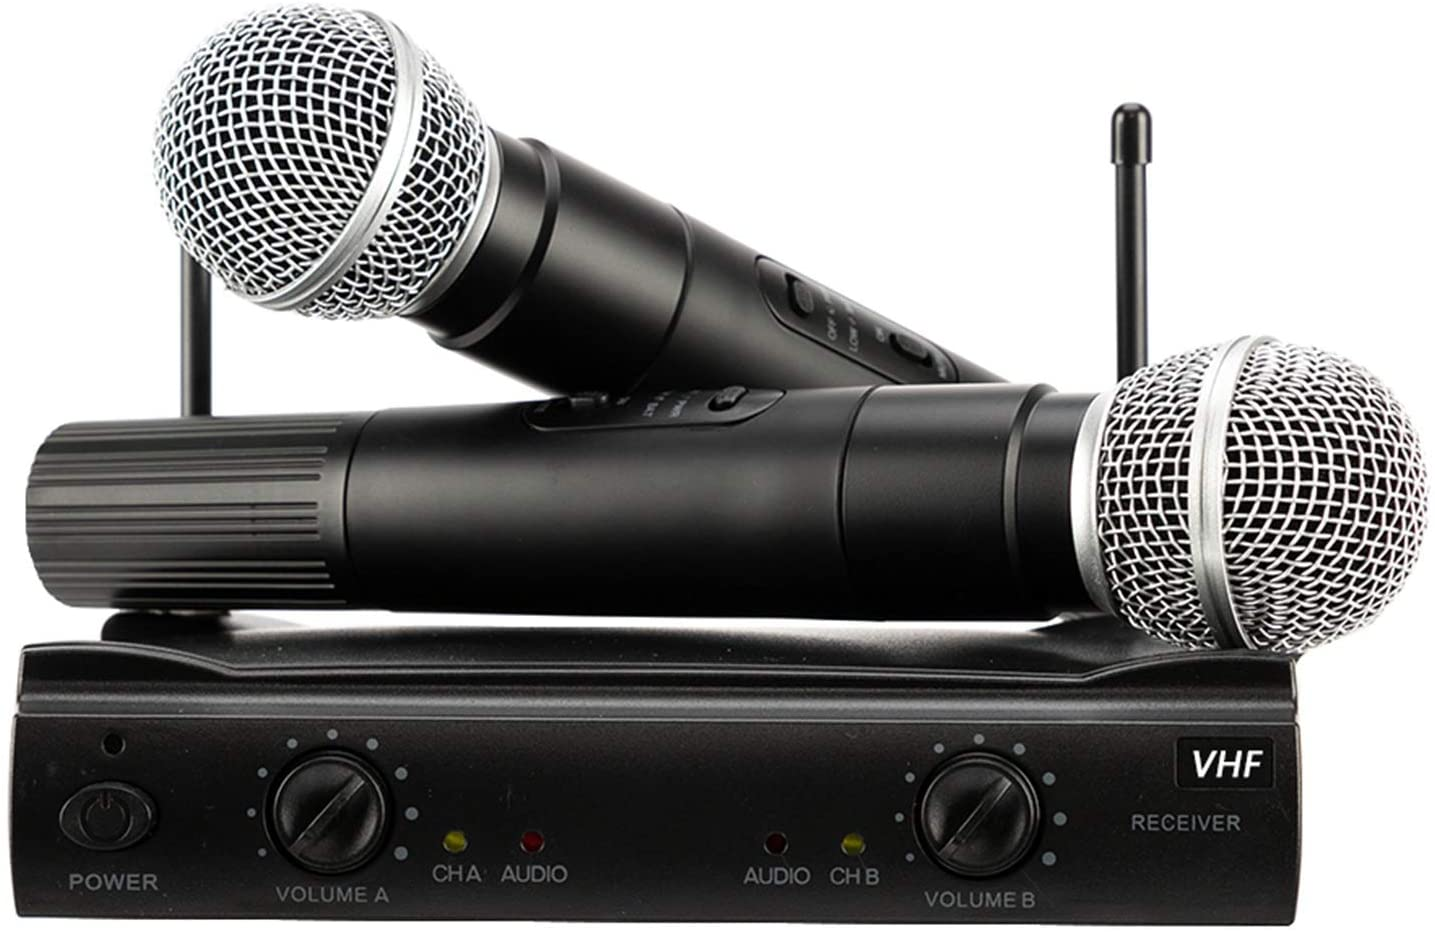 PGX-58 VHF Wireless Microphone System Dual Handheld 2 x Mic Cordless Receiver Black - Quality Musical Instrument Accessories for Karaoke Singing, Speech, Wedding, Stage and Outdoor Activity